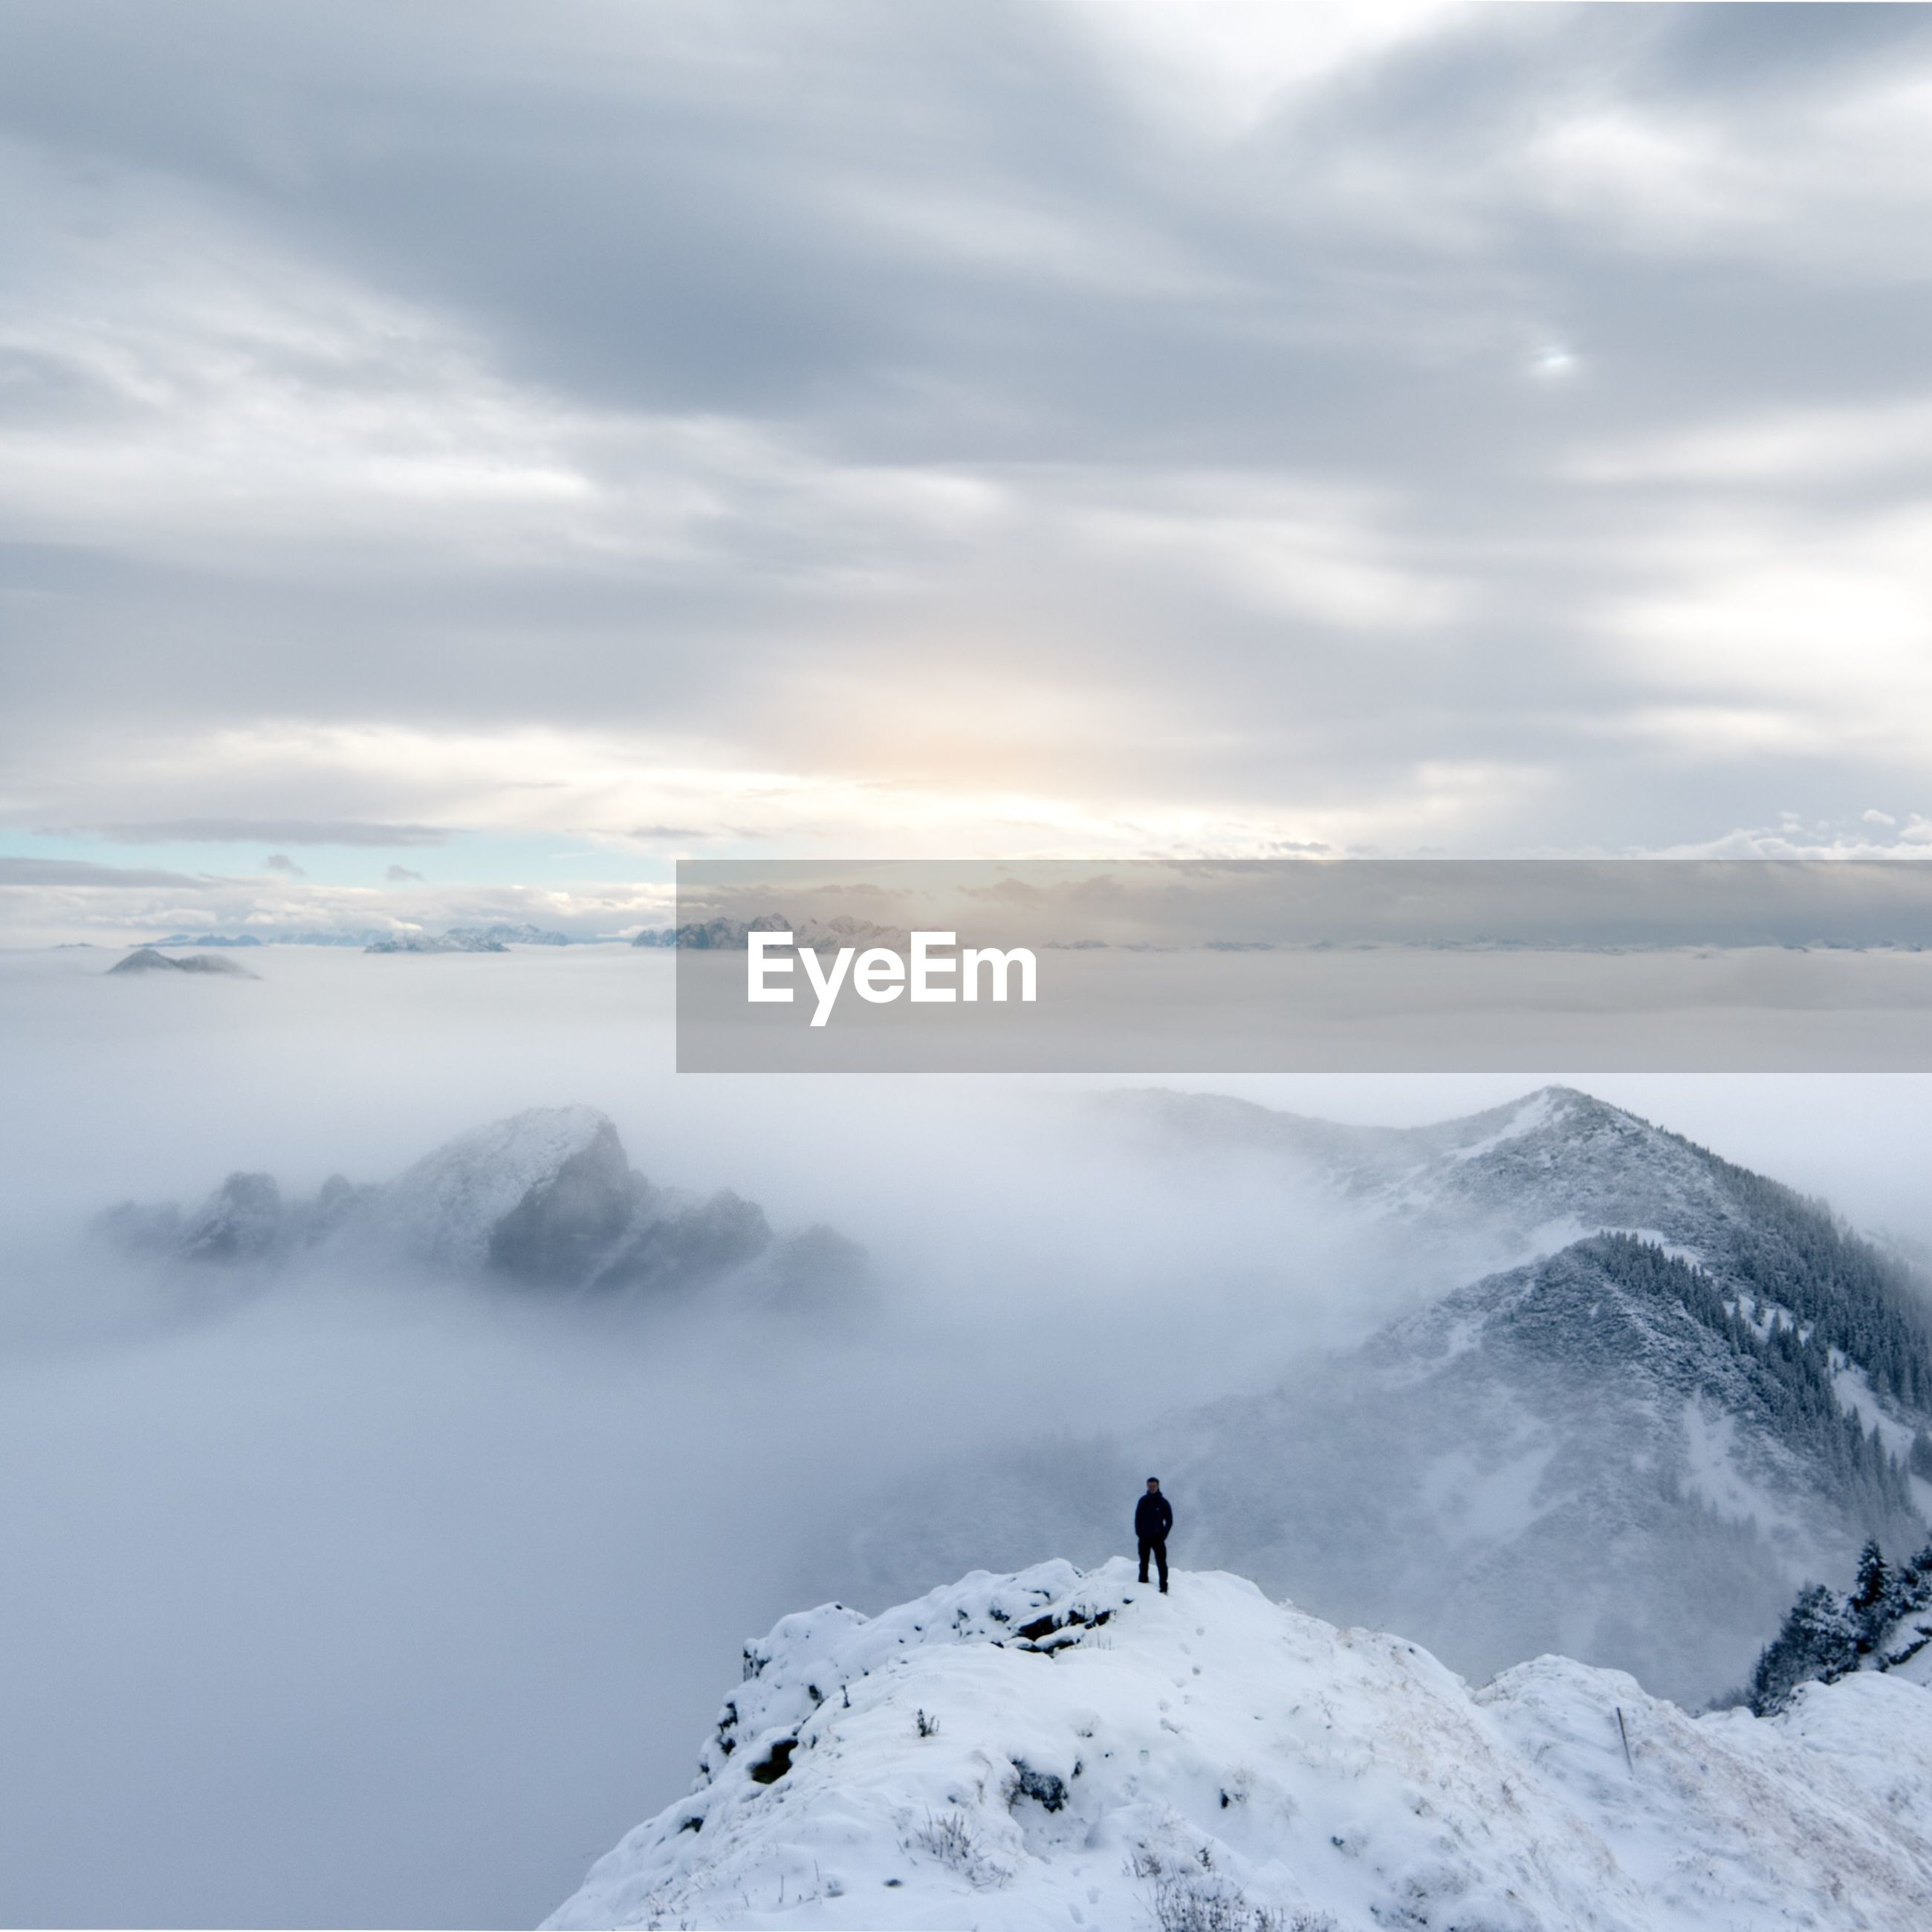 Person standing on snowcapped mountain against cloudy sky